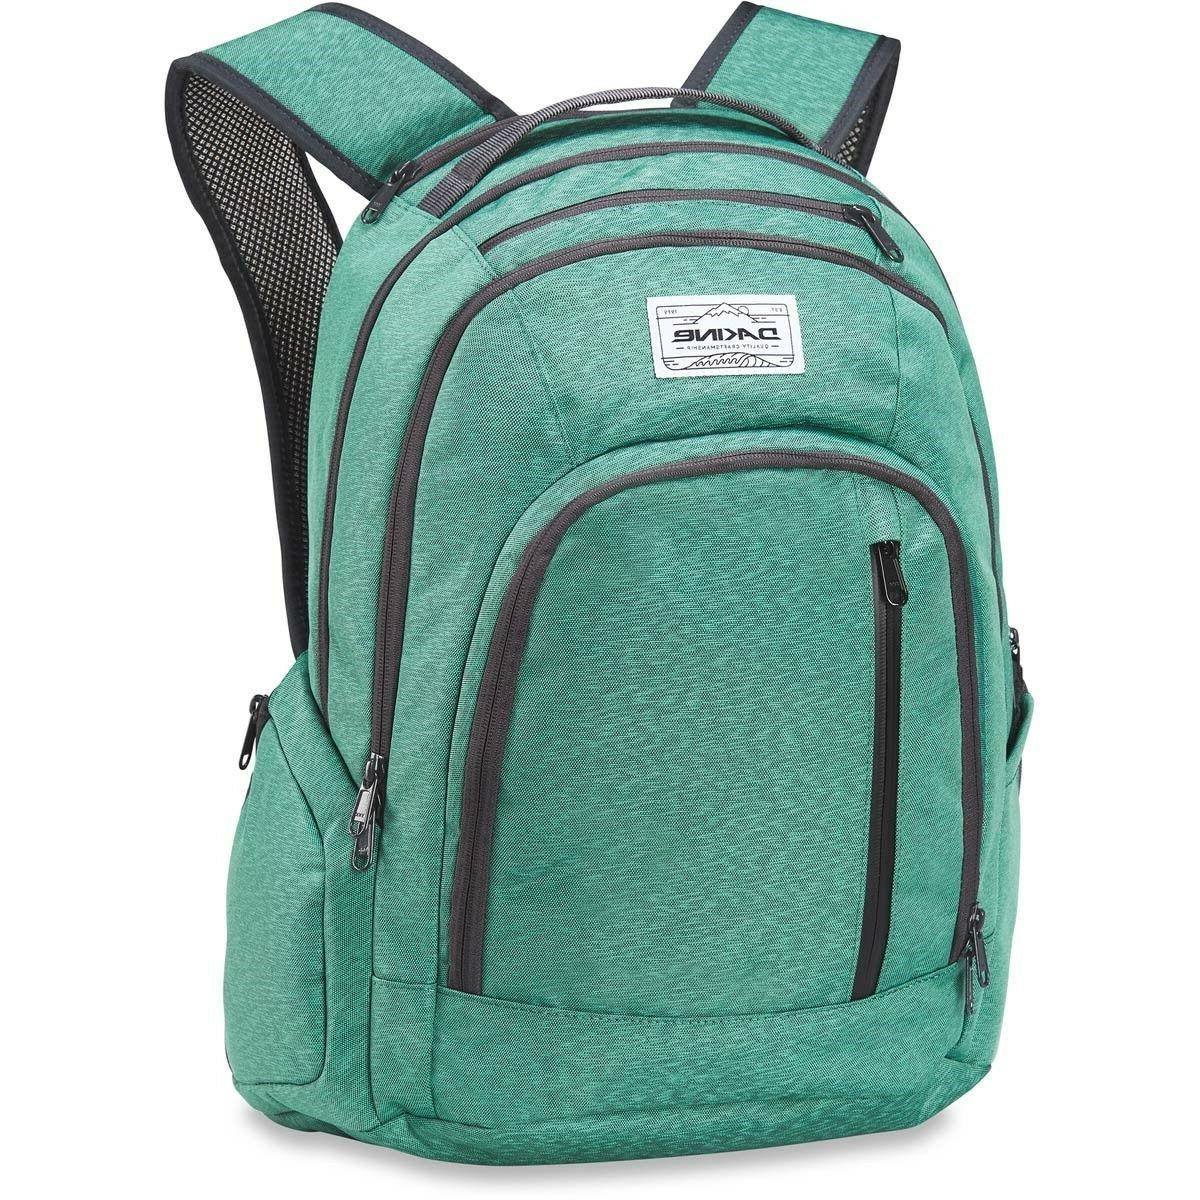 point 101 backpack saltwater